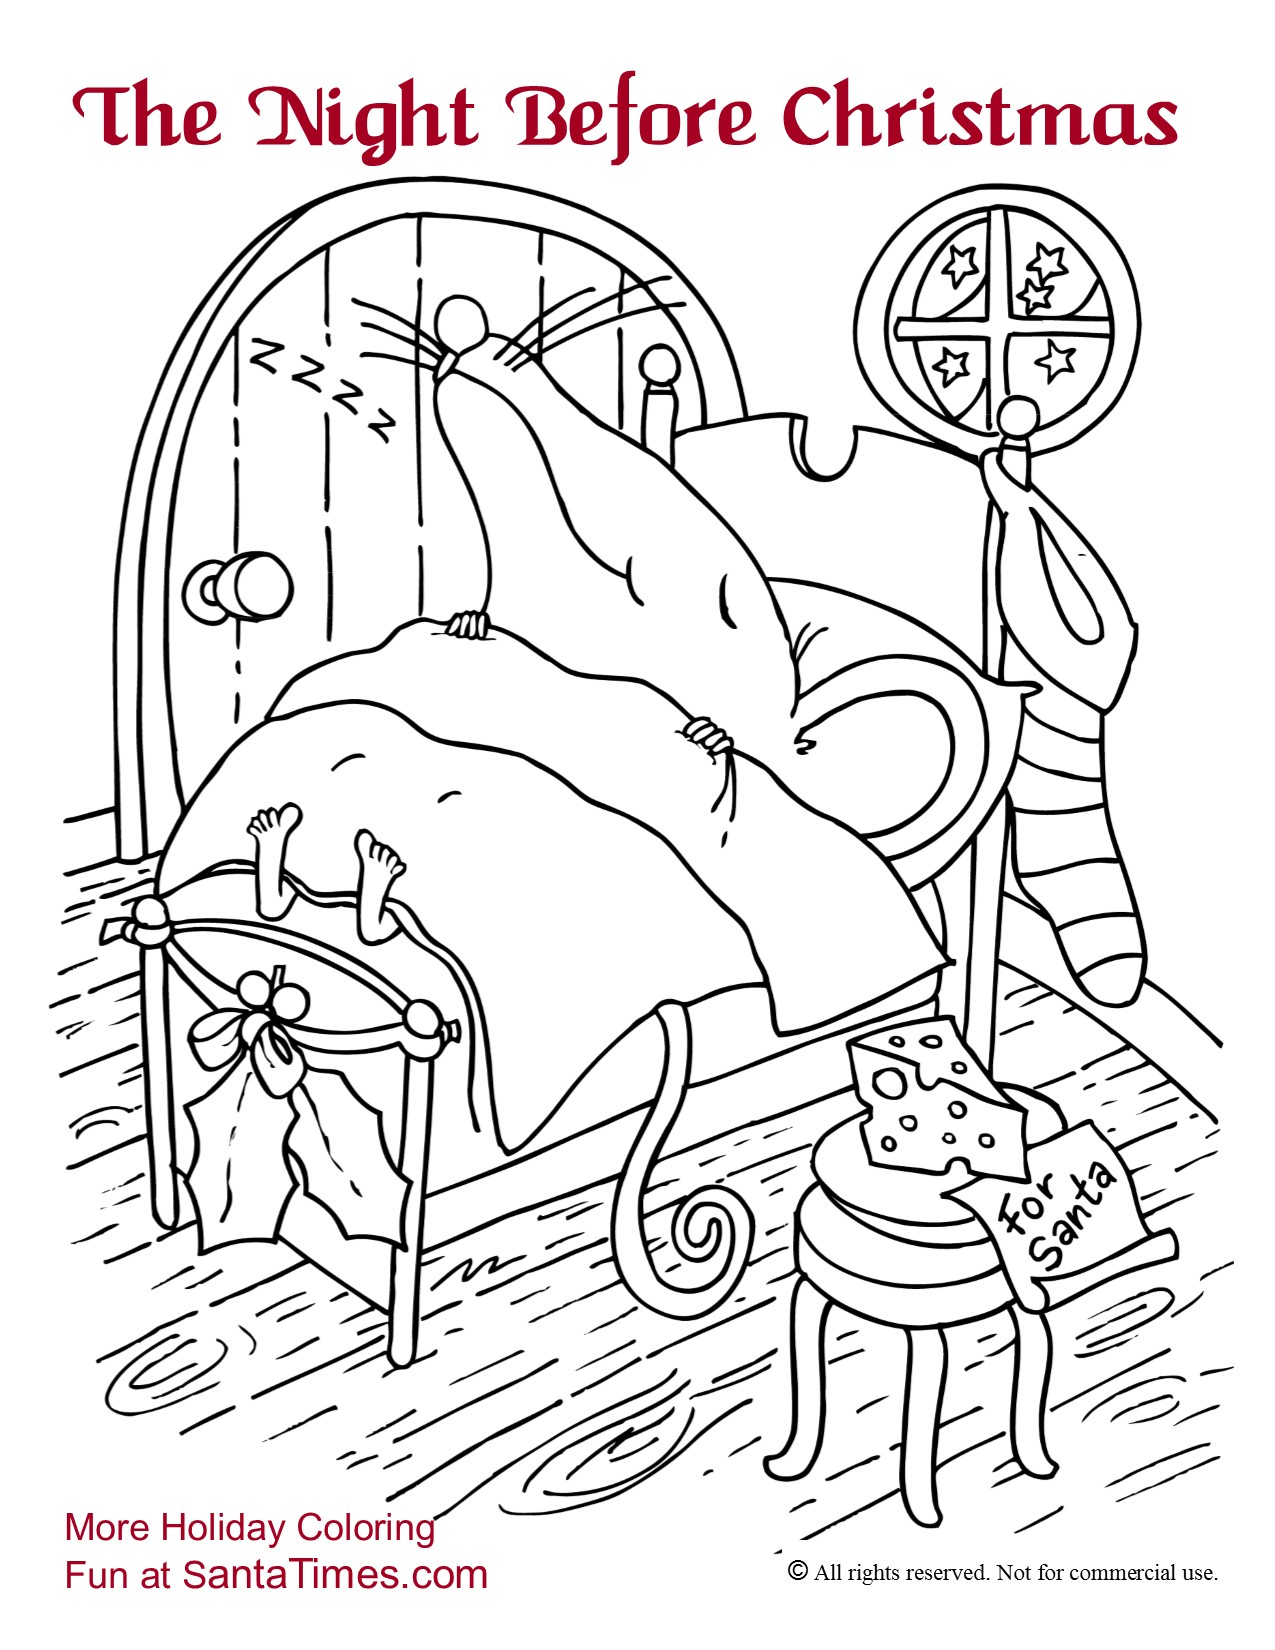 the night before christmas coloring page